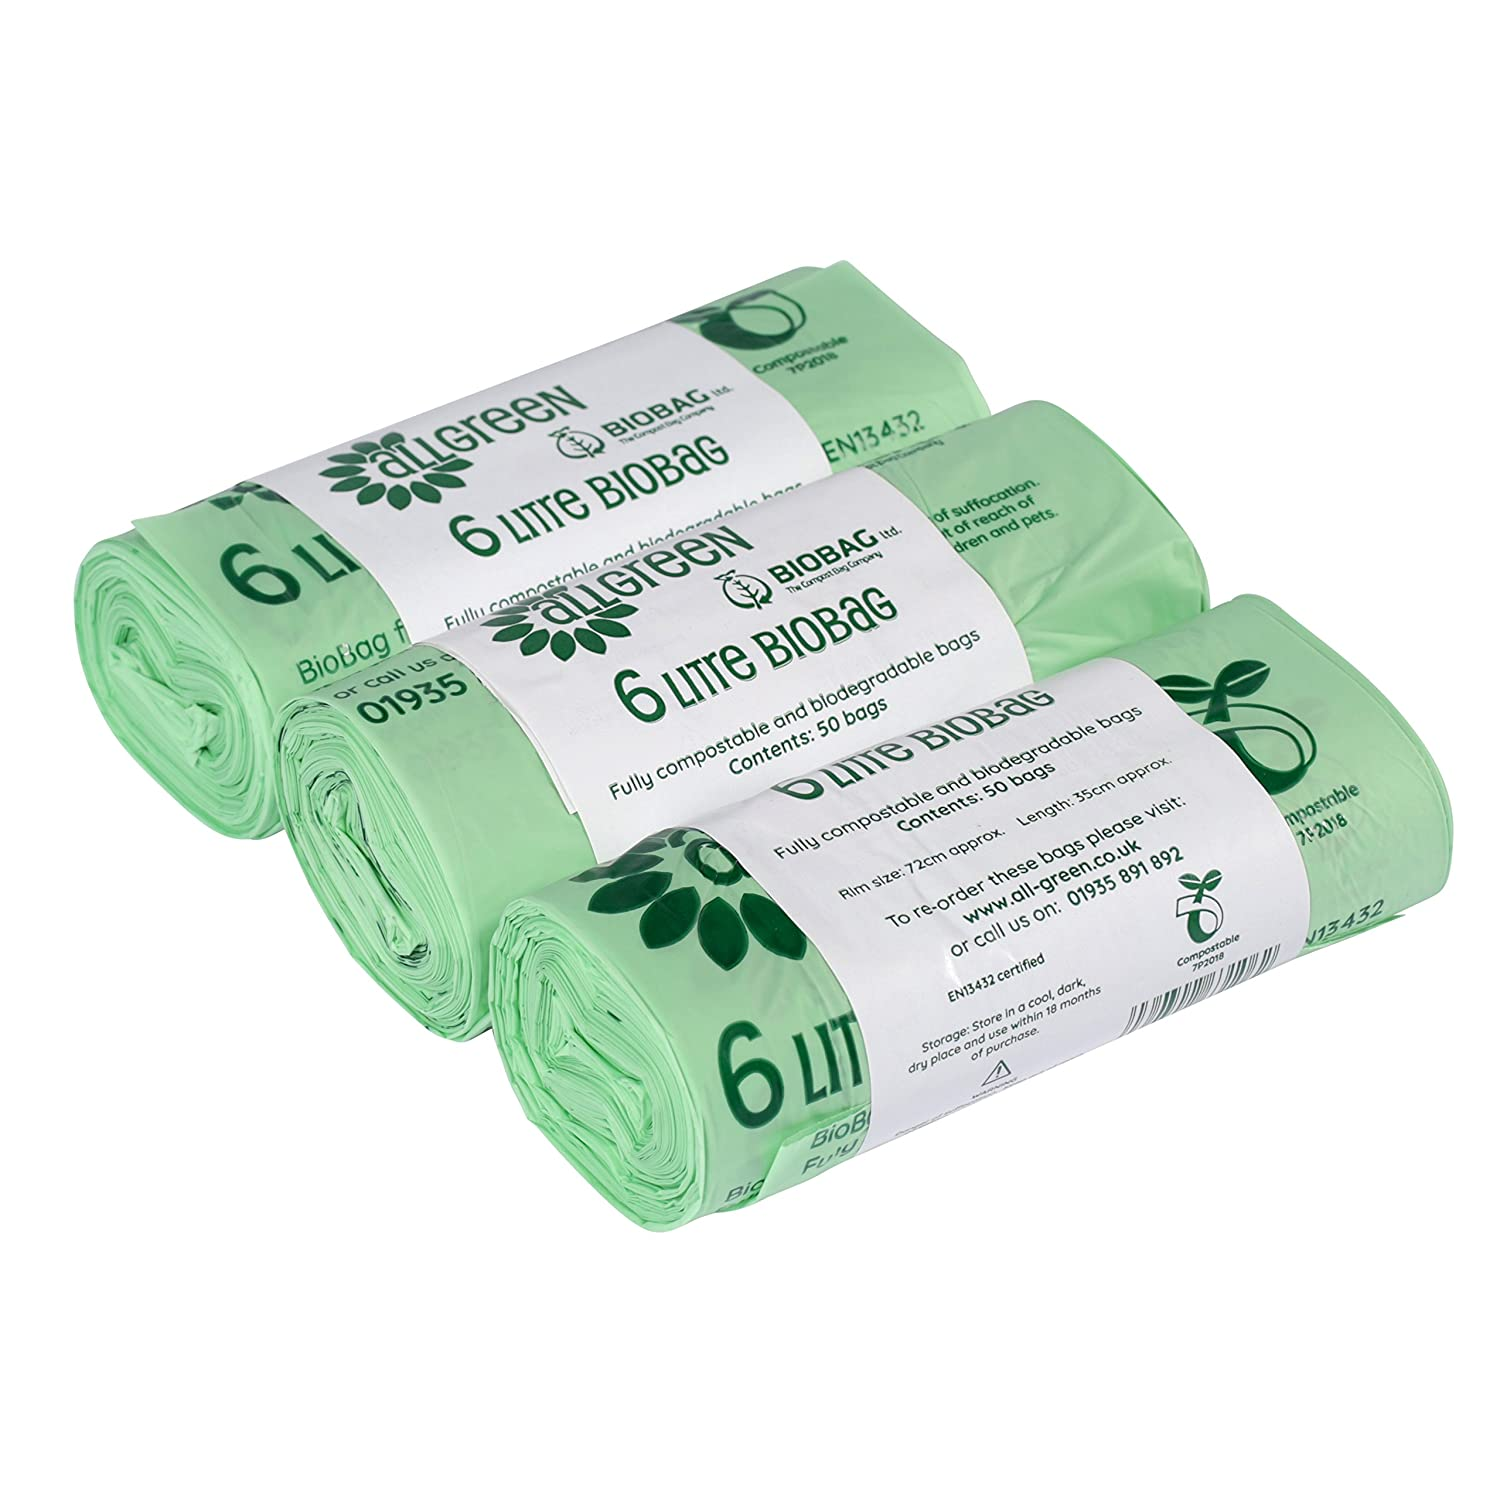 All-Green 6 Litre Biobag Compostable Kitchen Caddy Liners Food Waste Bin Liners, 150 Bags GroceryCentre VC 6L-3